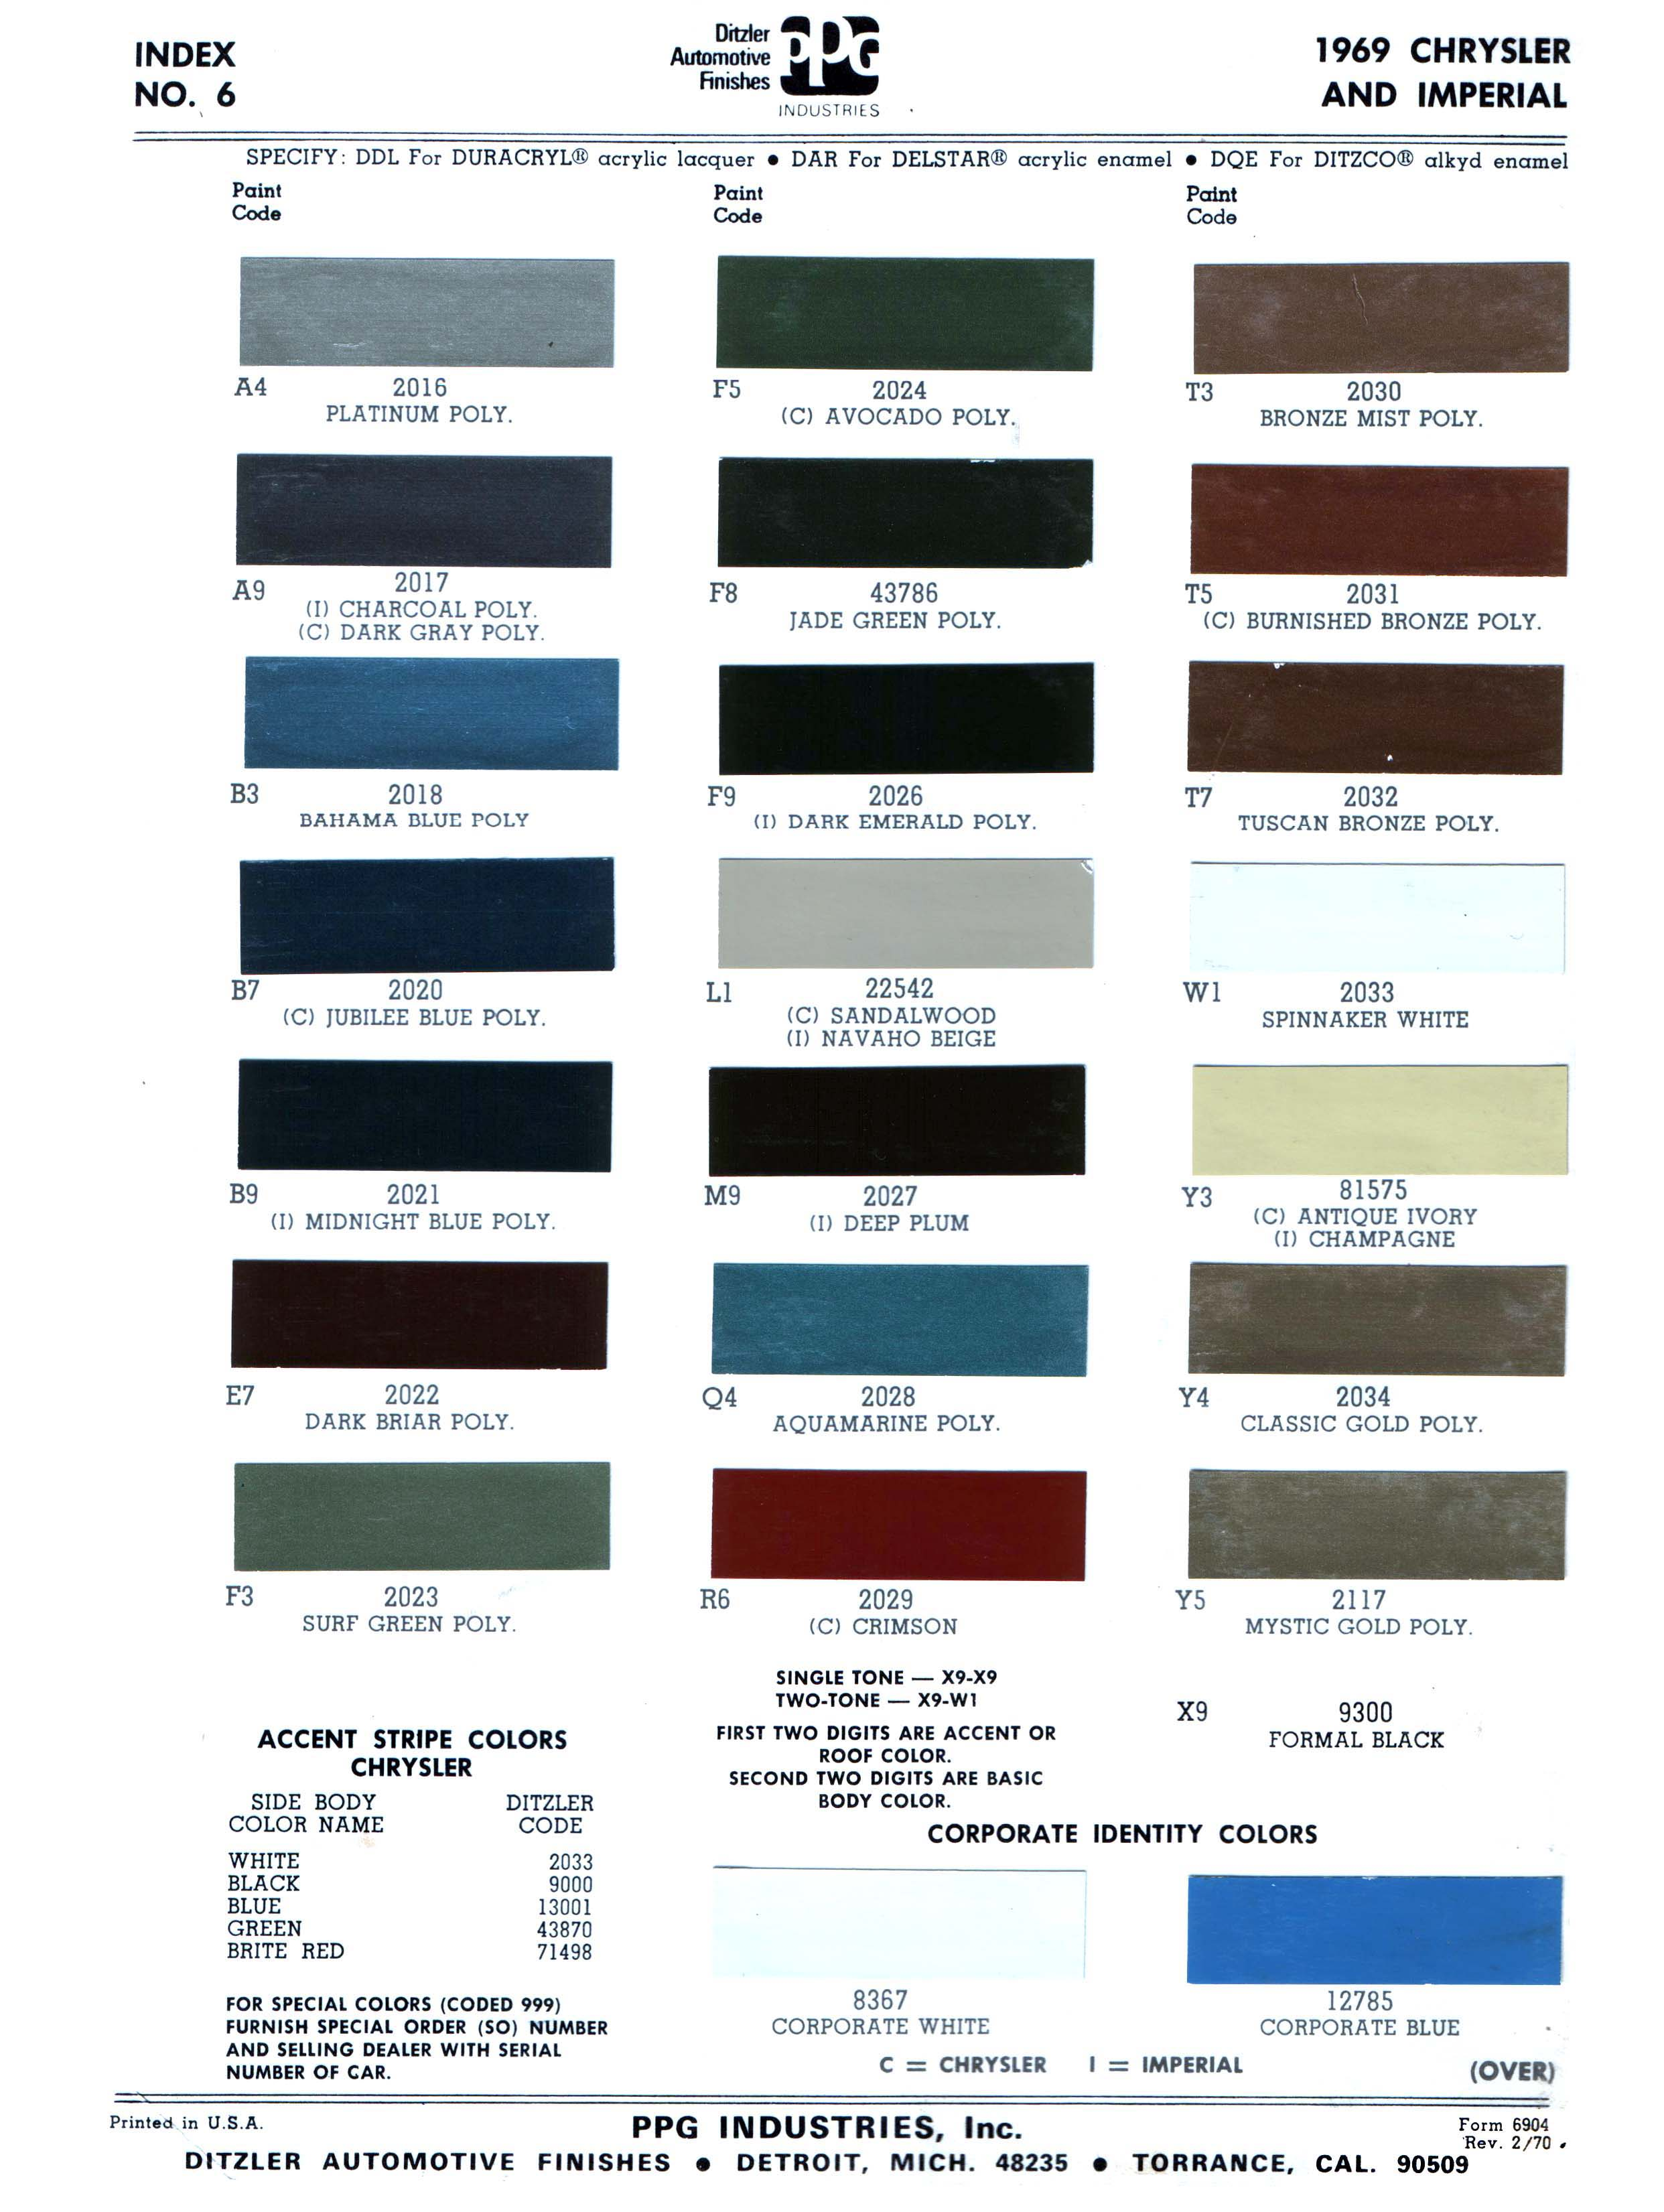 1969 chrysler imperial automotive refinish colors ppg ditzler automotive finishes martin senour paints larger printable version nvjuhfo Images